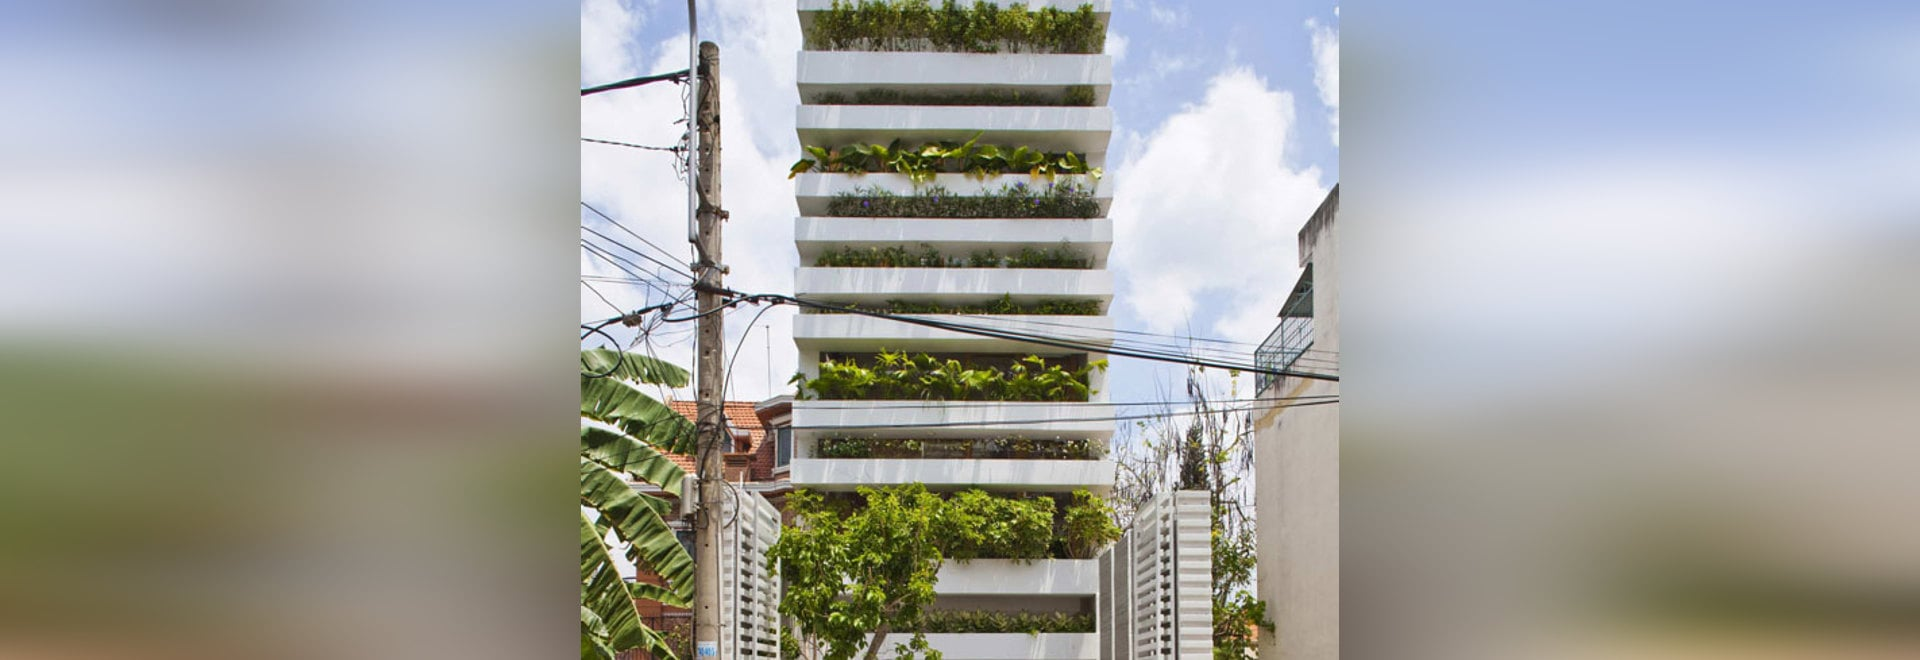 The hung planters forming the facade of a detached house by Vo Trong Nghia in Ho Chi Minh City allow variations in plant height and type. The plants are watered automatically by means of an integra...